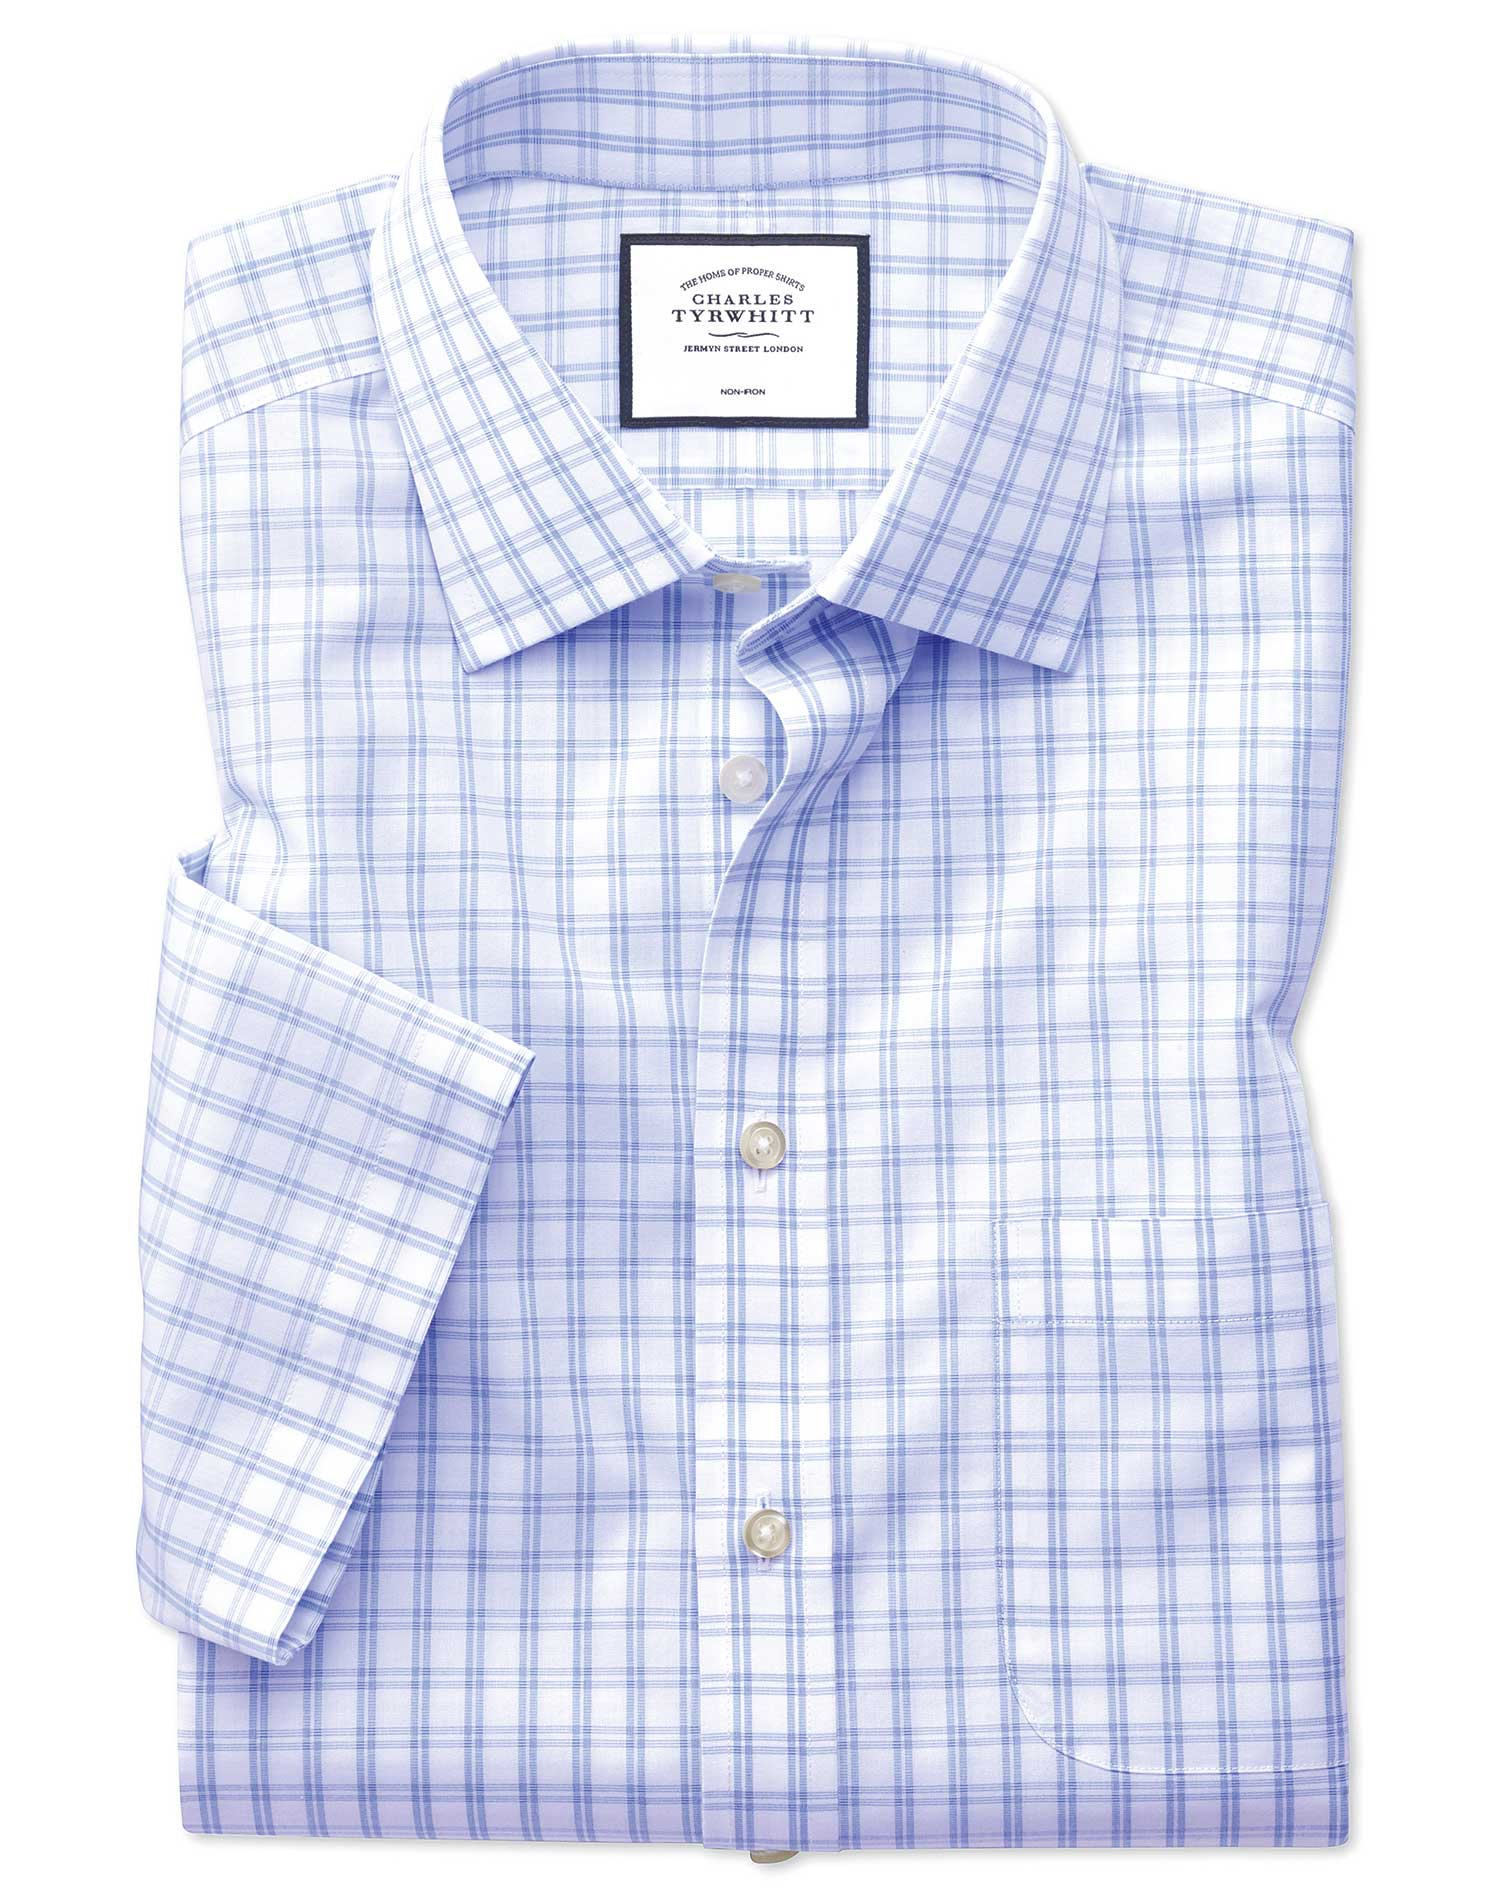 Classic Fit Non-Iron Natural Cool Short Sleeve Sky Blue Check Cotton Formal Shirt Size 18/Short by C